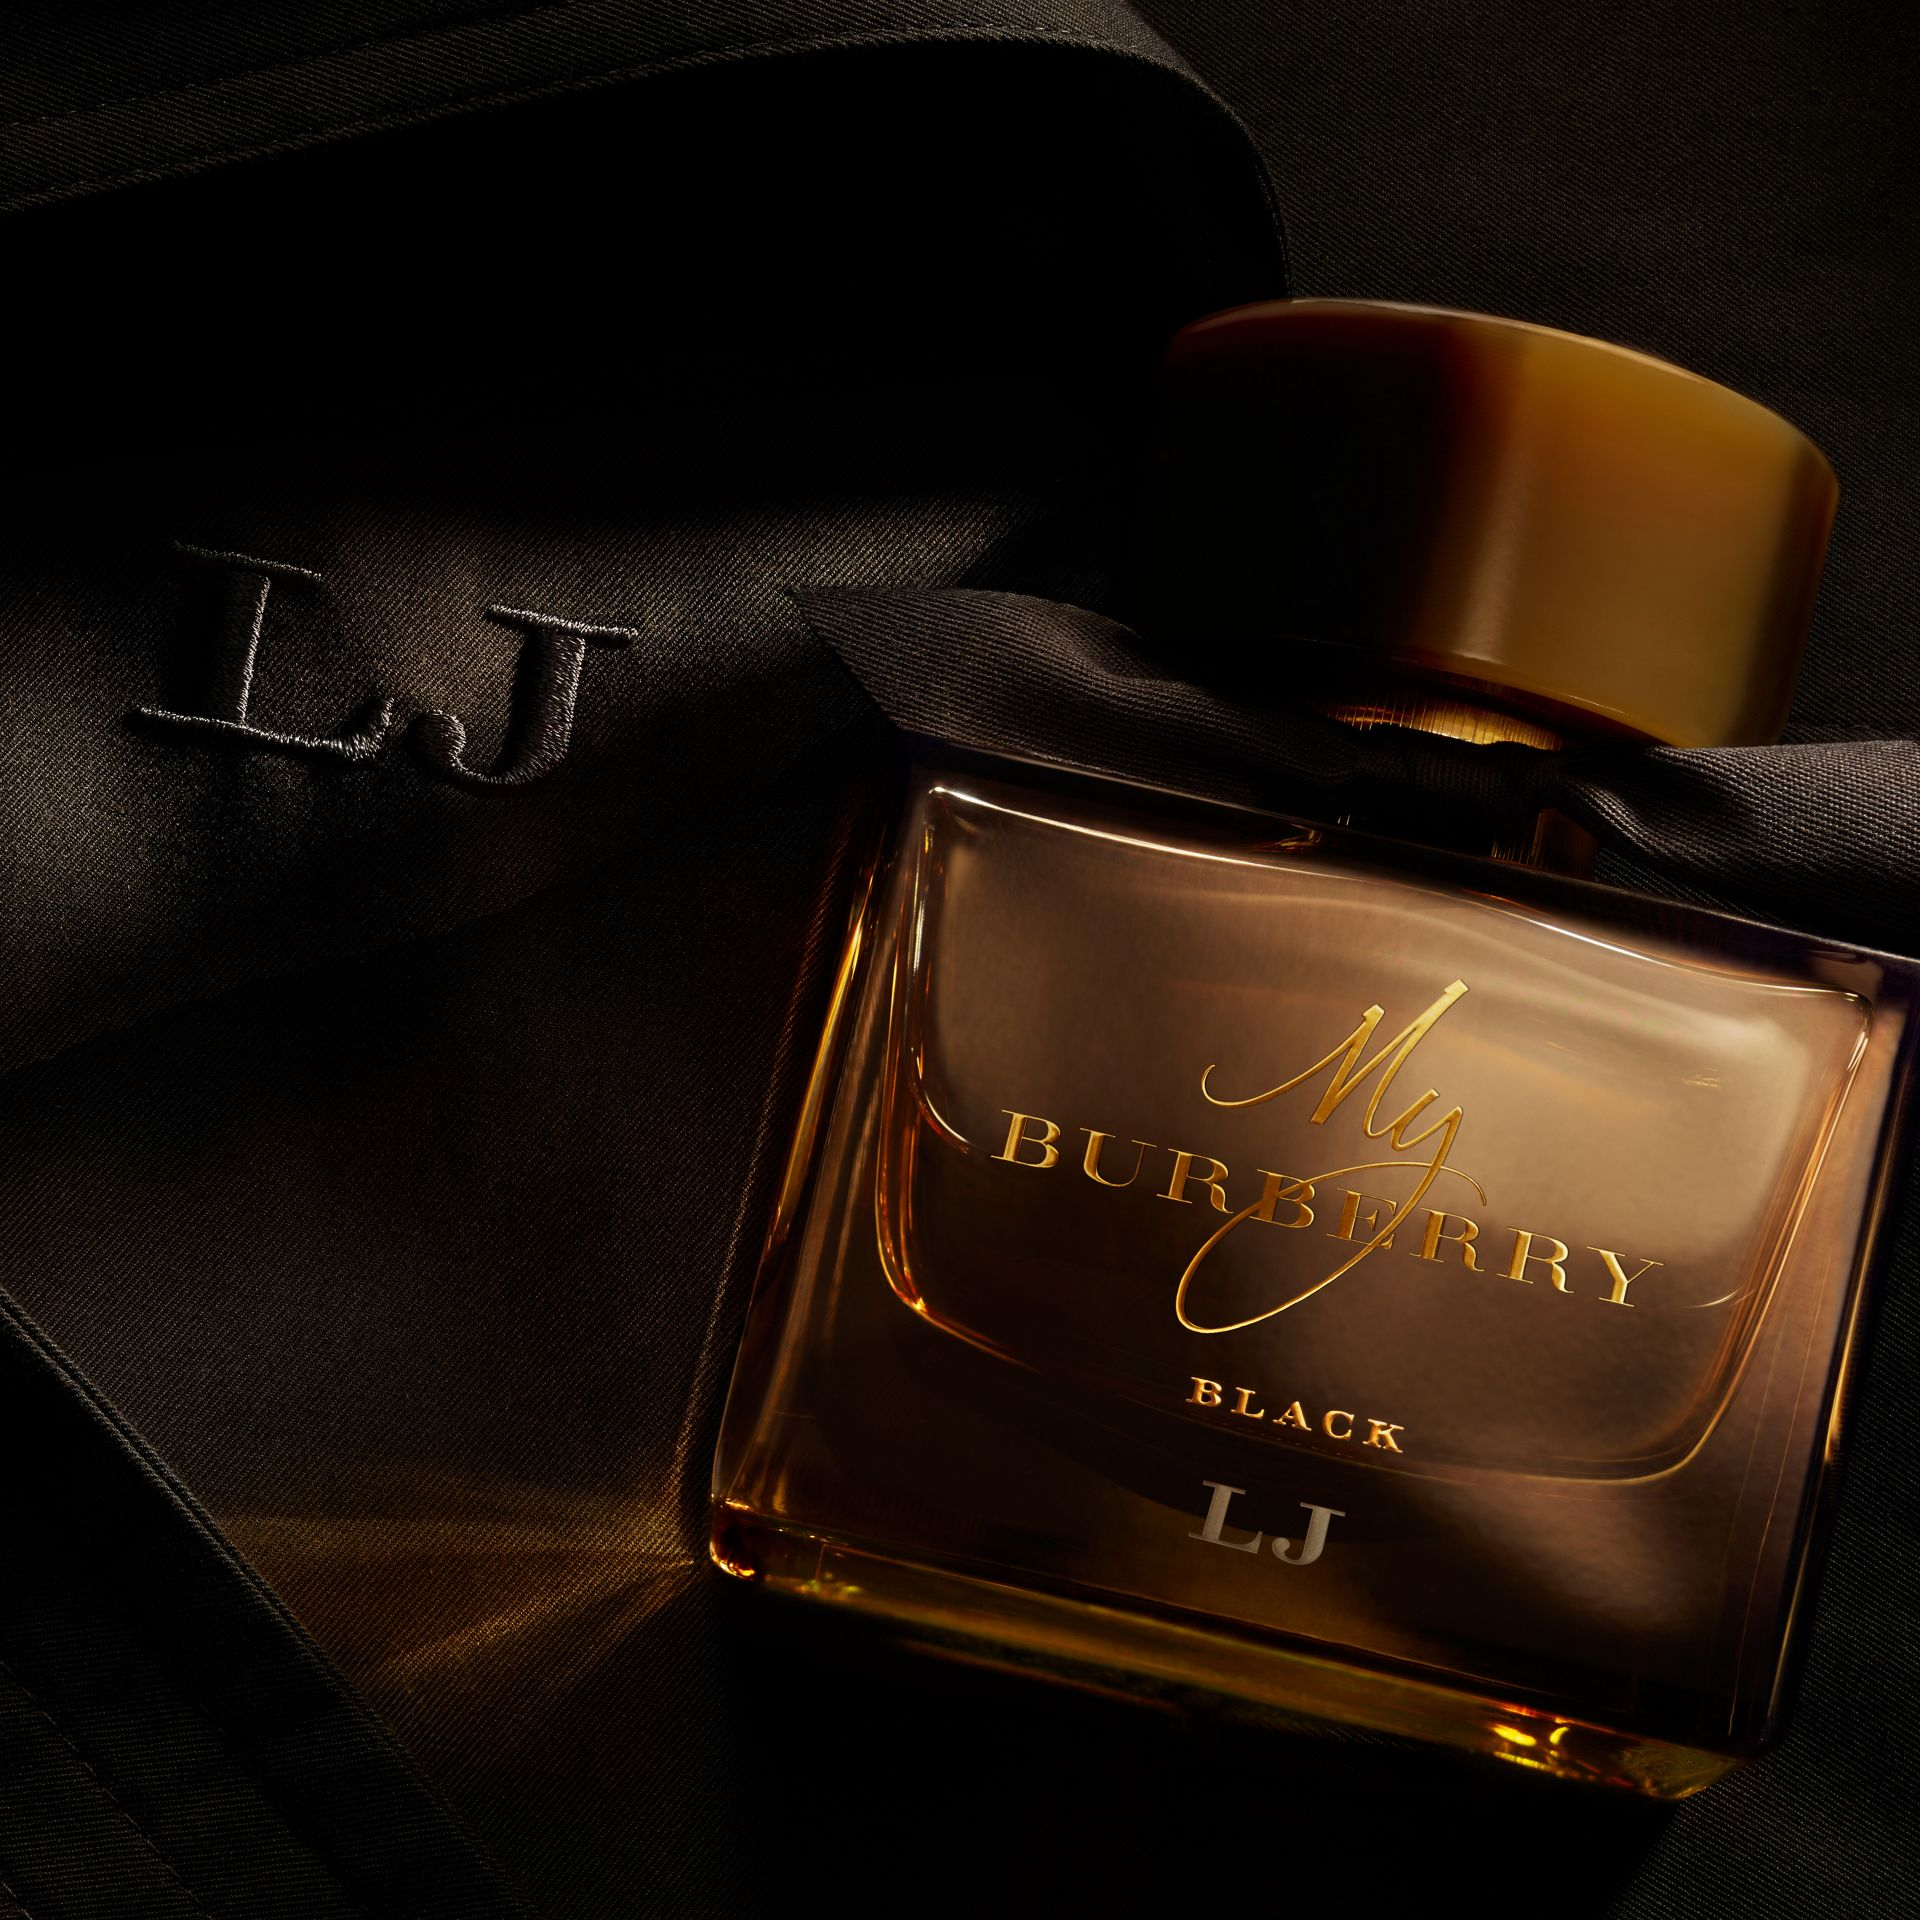 My Burberry Black Parfum 90ml - gallery image 5